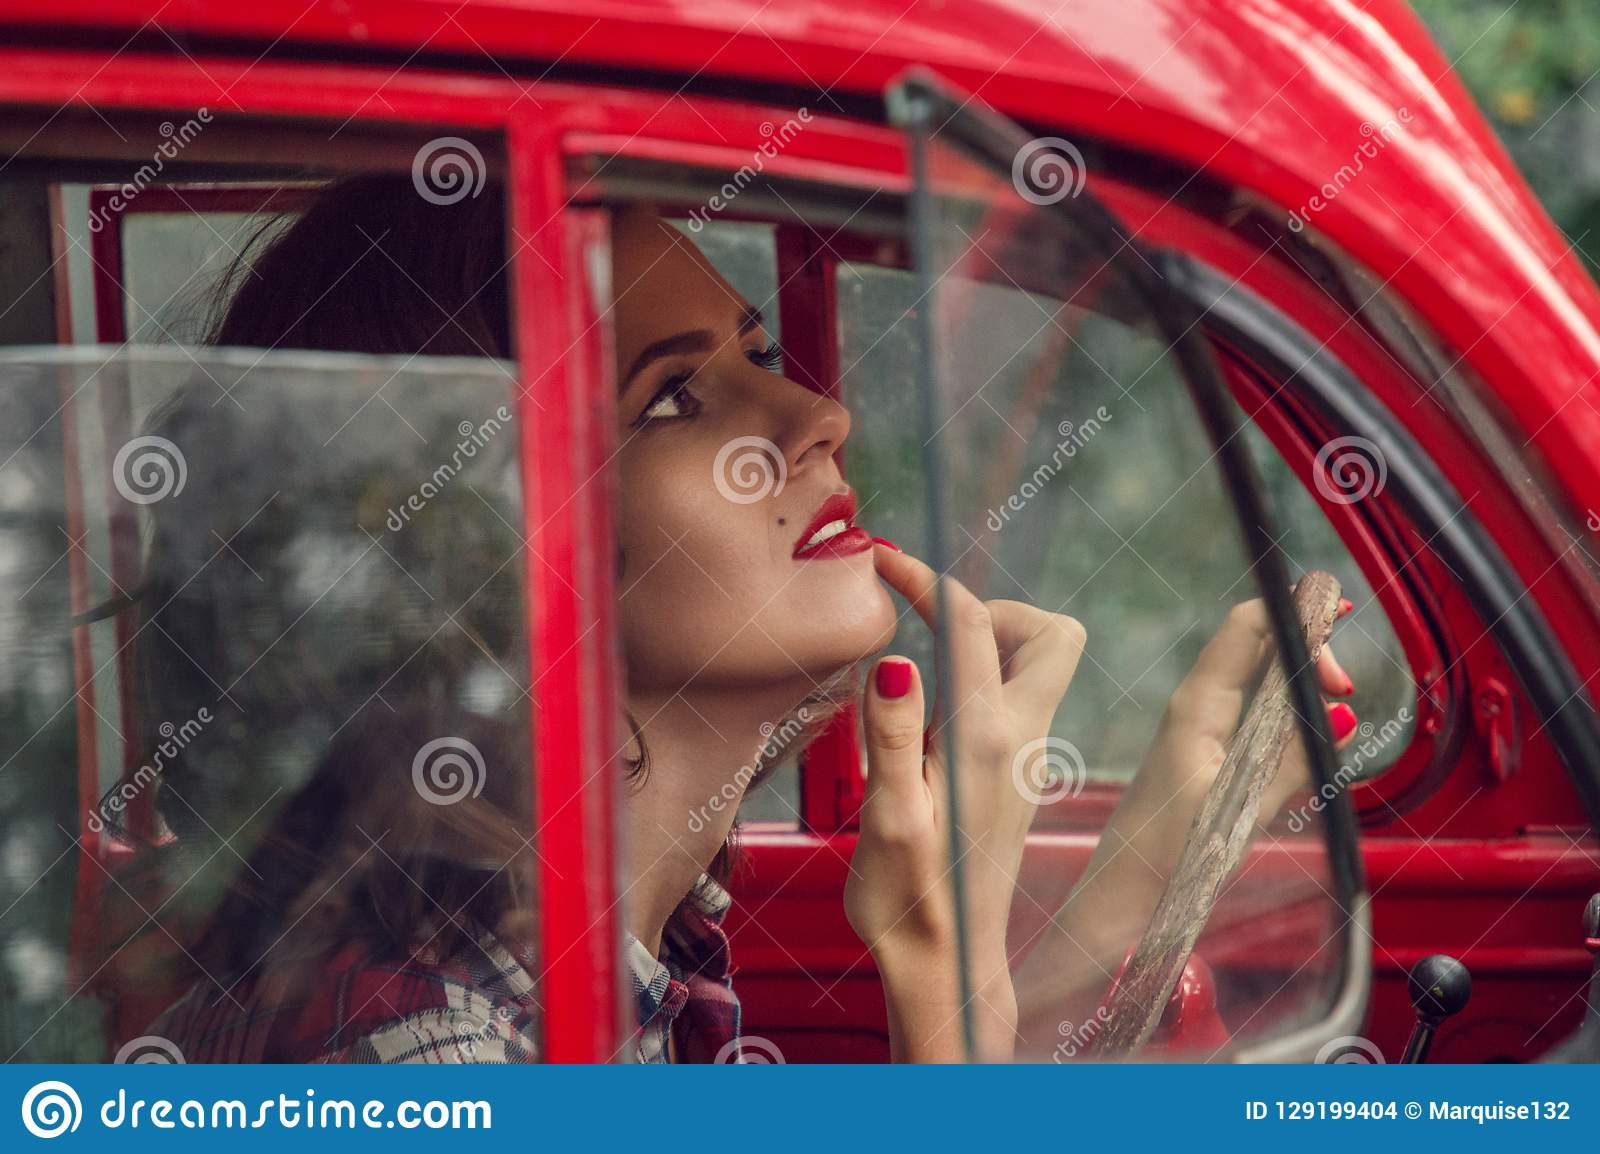 A beautiful pin-up girl in a plaid shirt corrects make-up in the salon of an old red retro car.